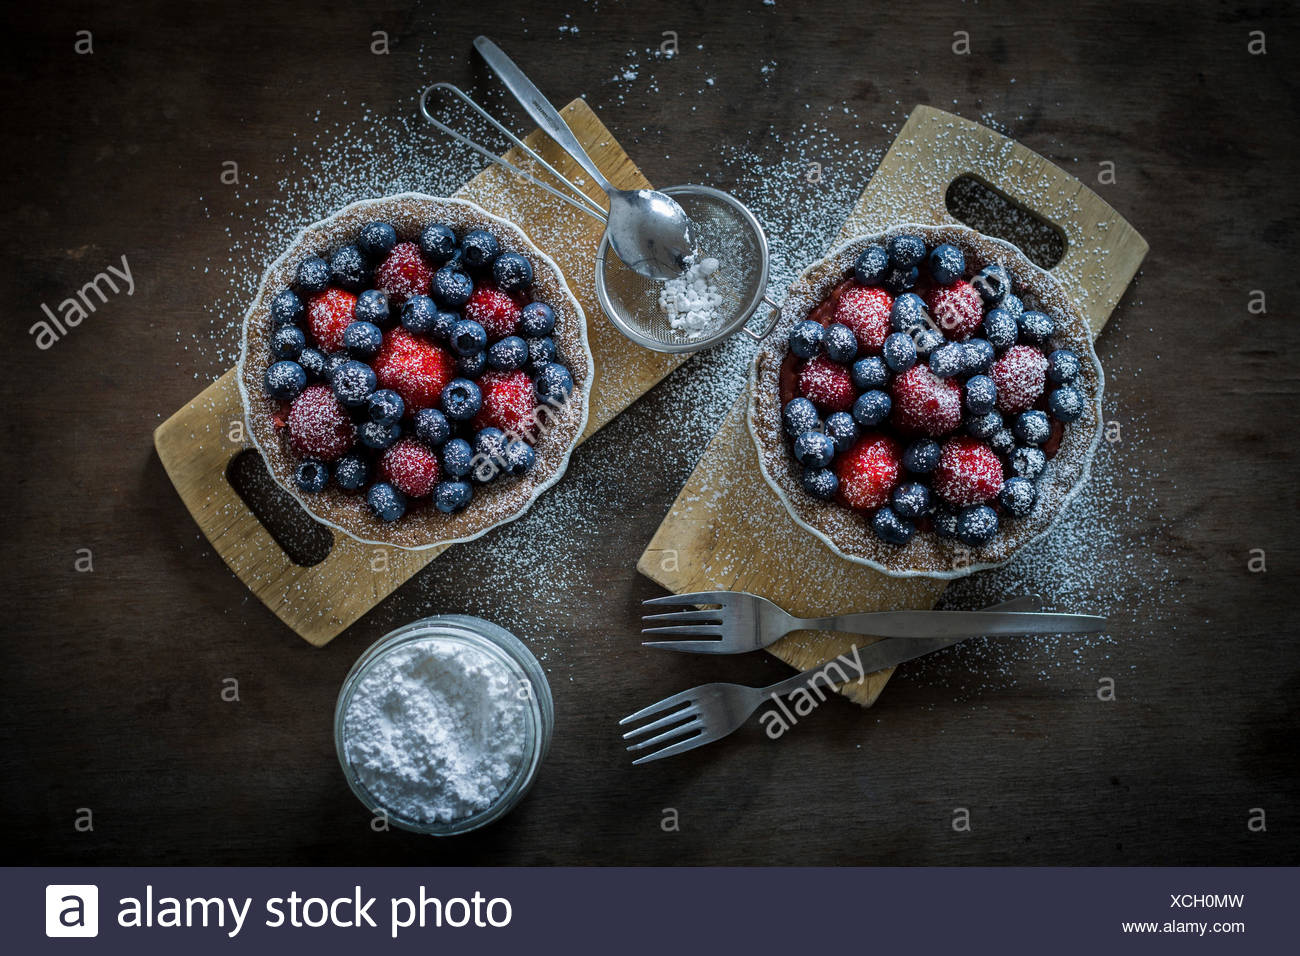 Berry tartetelets with icing sugar in baking dishes on wooden plates with sifter and cake forks. Top view - Stock Image